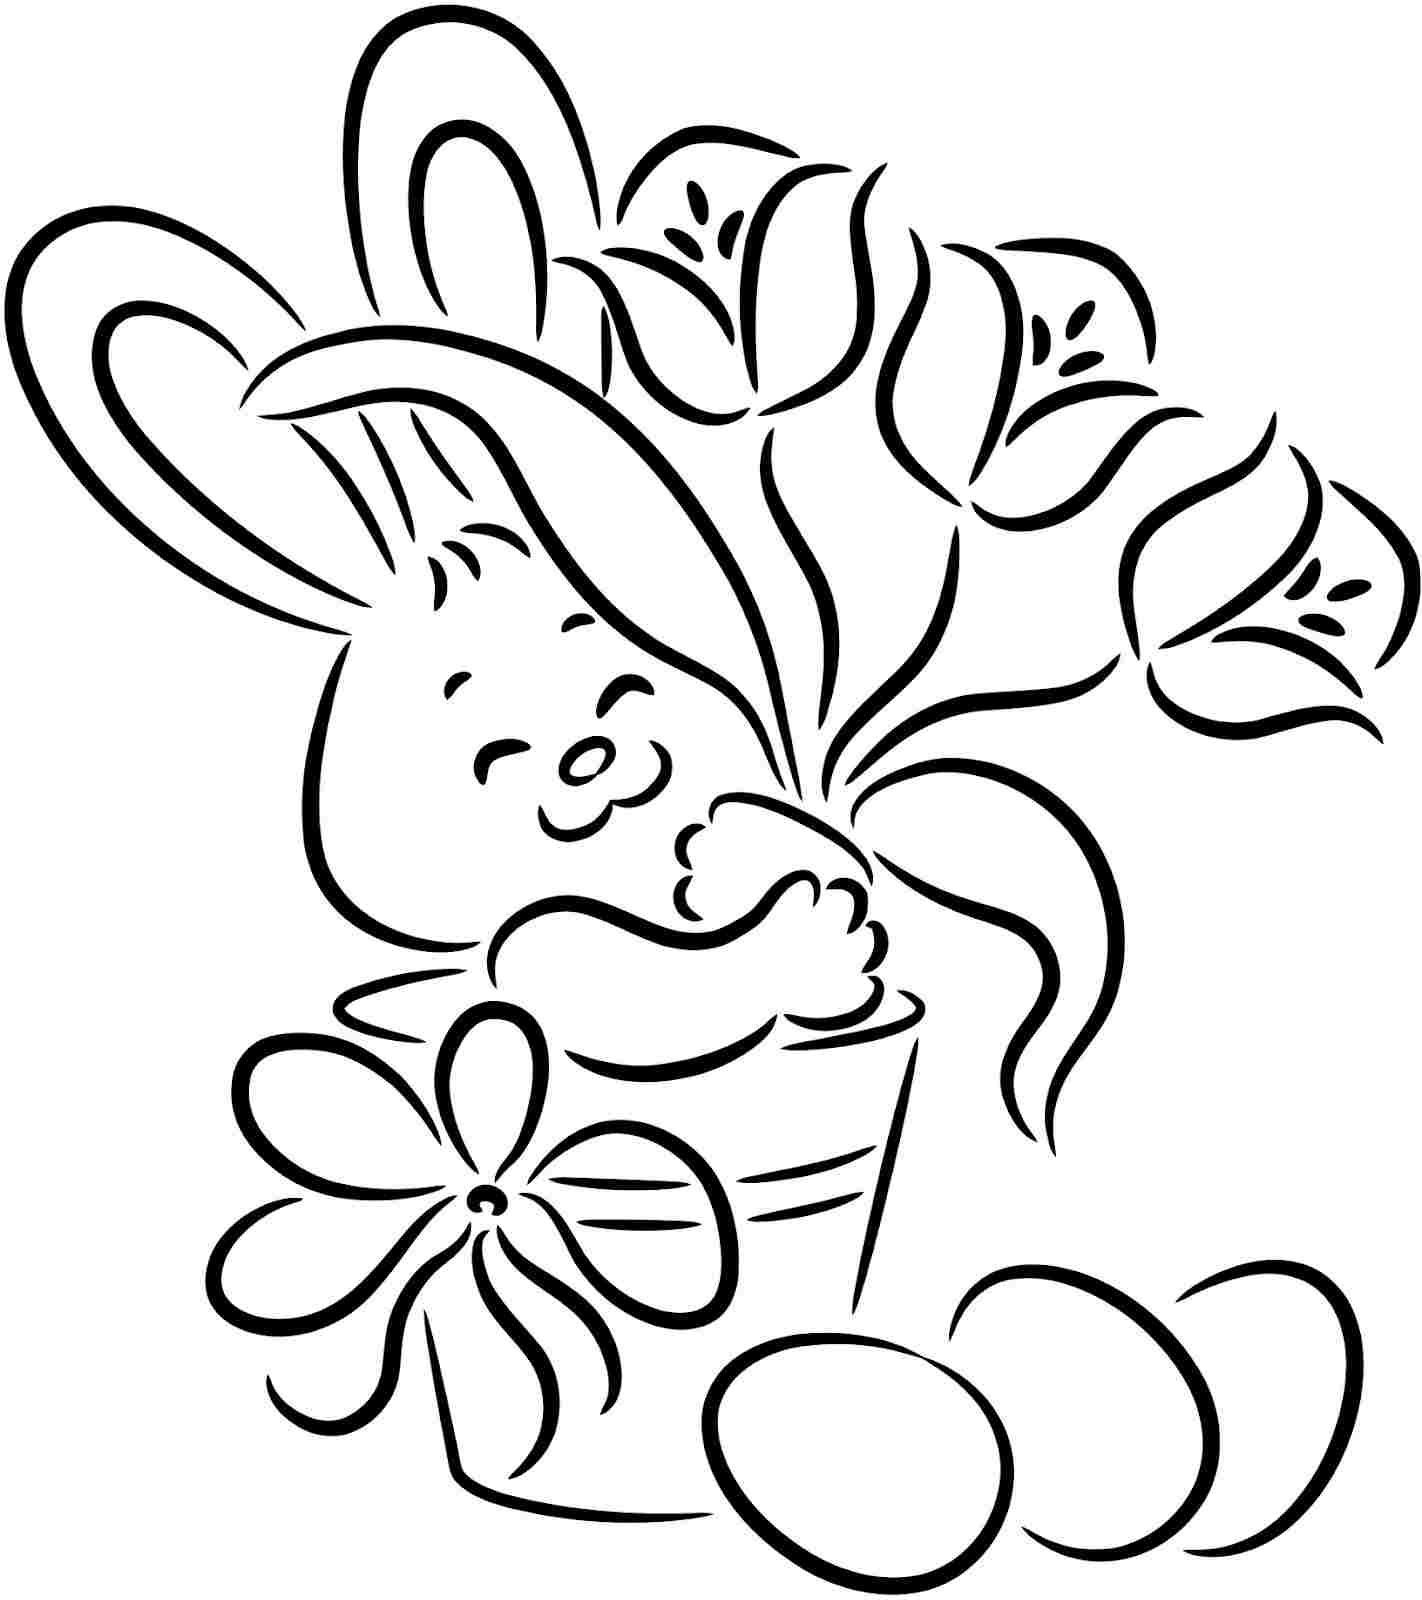 easy bunny drawings for kids easter colouring pages id 28875 - Drawing And Colouring